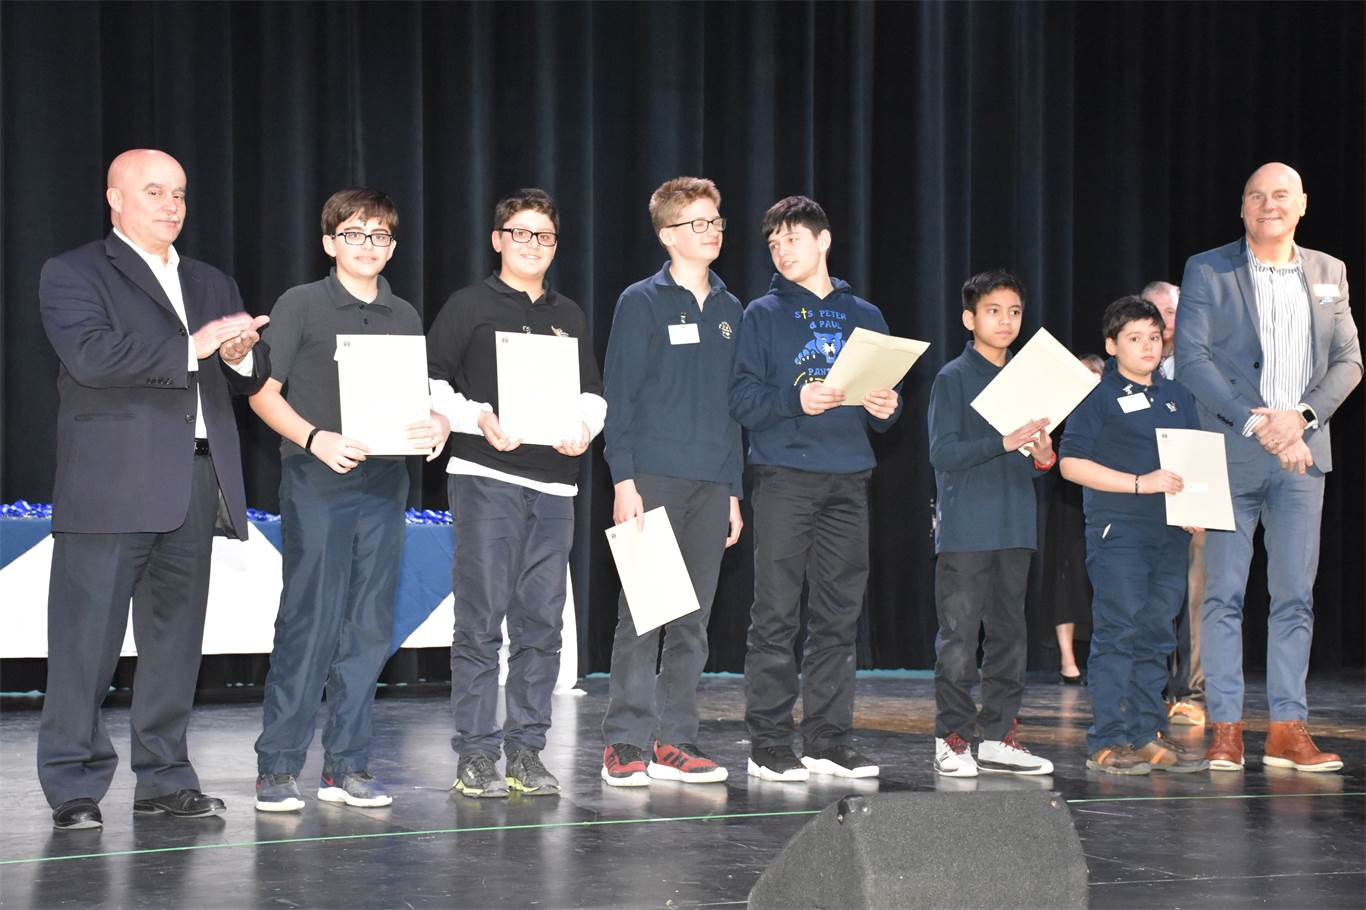 OECTA Secondary President Sergio Cacoilo and Assistant Superintendent Greg Tabone present Environmental Awards to the highest scoring projects in the category of Environment Sciences. Pictured, from left to right, are Sergio Cacoilo, Adam Cabrera, Giuseppe Palermo, William Tremblay, Alexandru Atanasoaei, William Cagas, Andrei Patrau, and Greg Tabone.